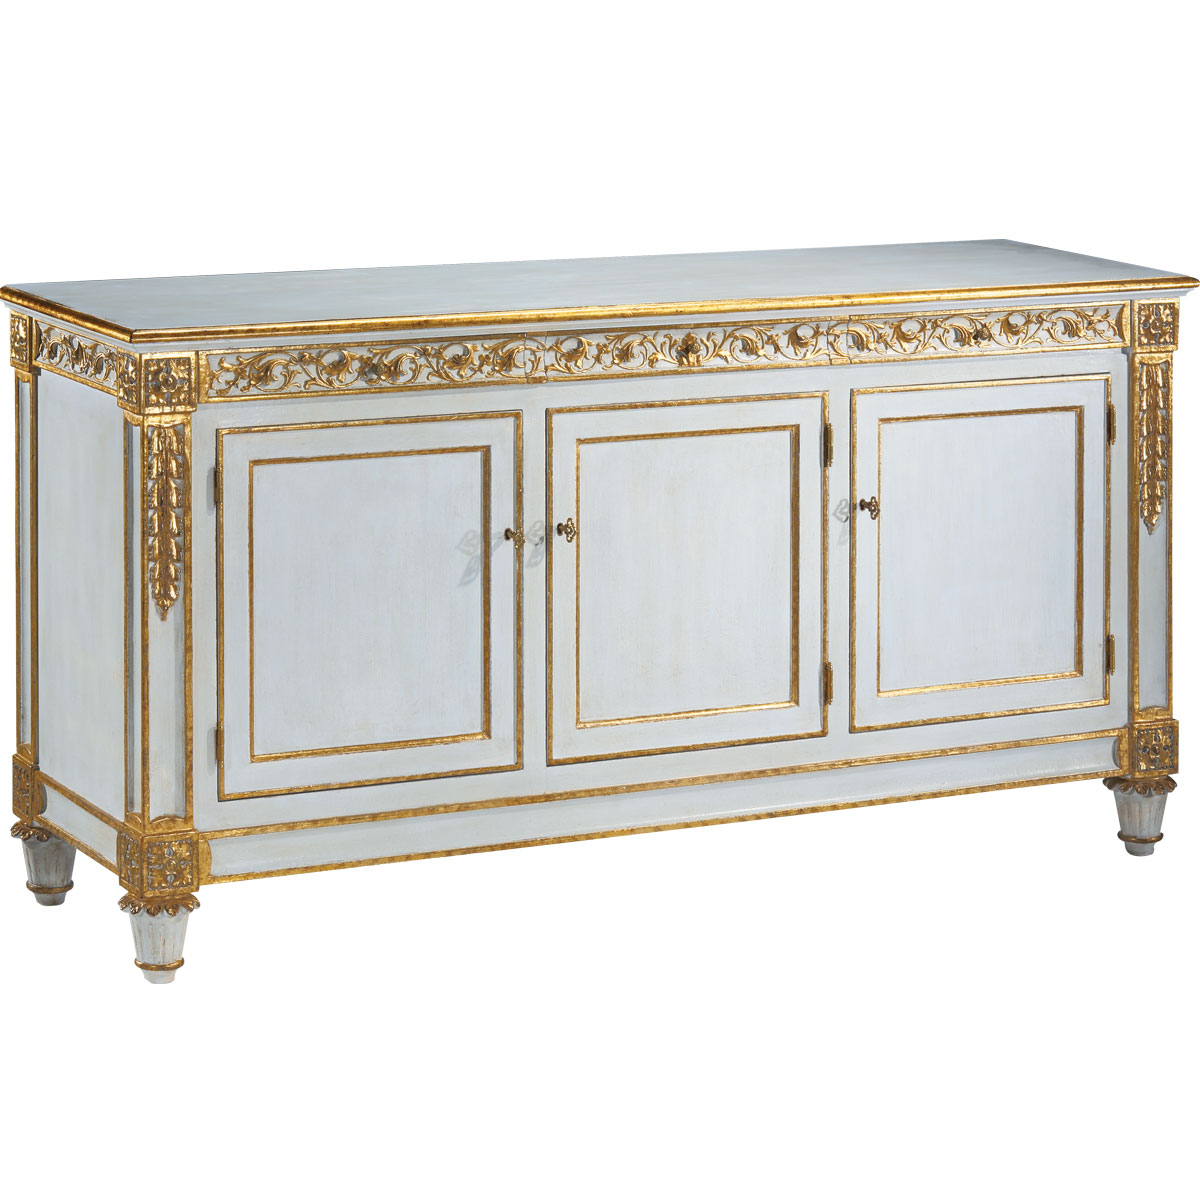 Blue Hand Carved Credenza | Dandelion Spell Throughout Copper Leaf Wood Credenzas (View 4 of 30)